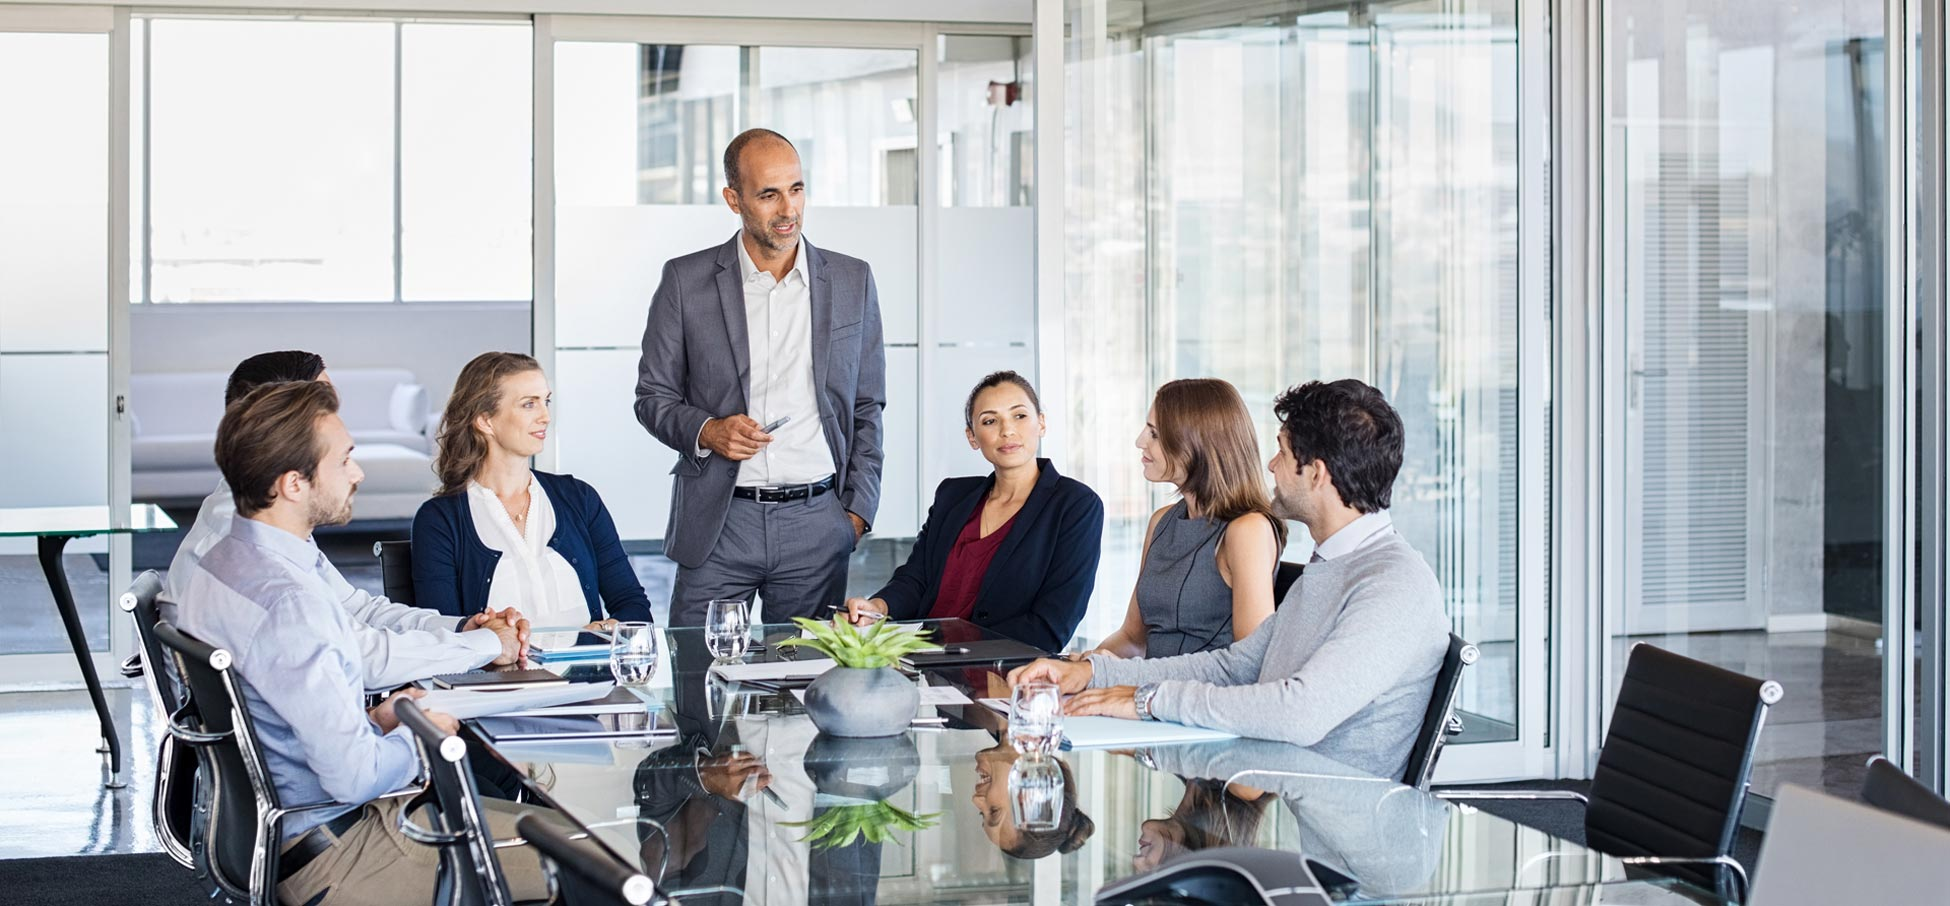 Changing Corporate Culture through Shared Vision and Purpose